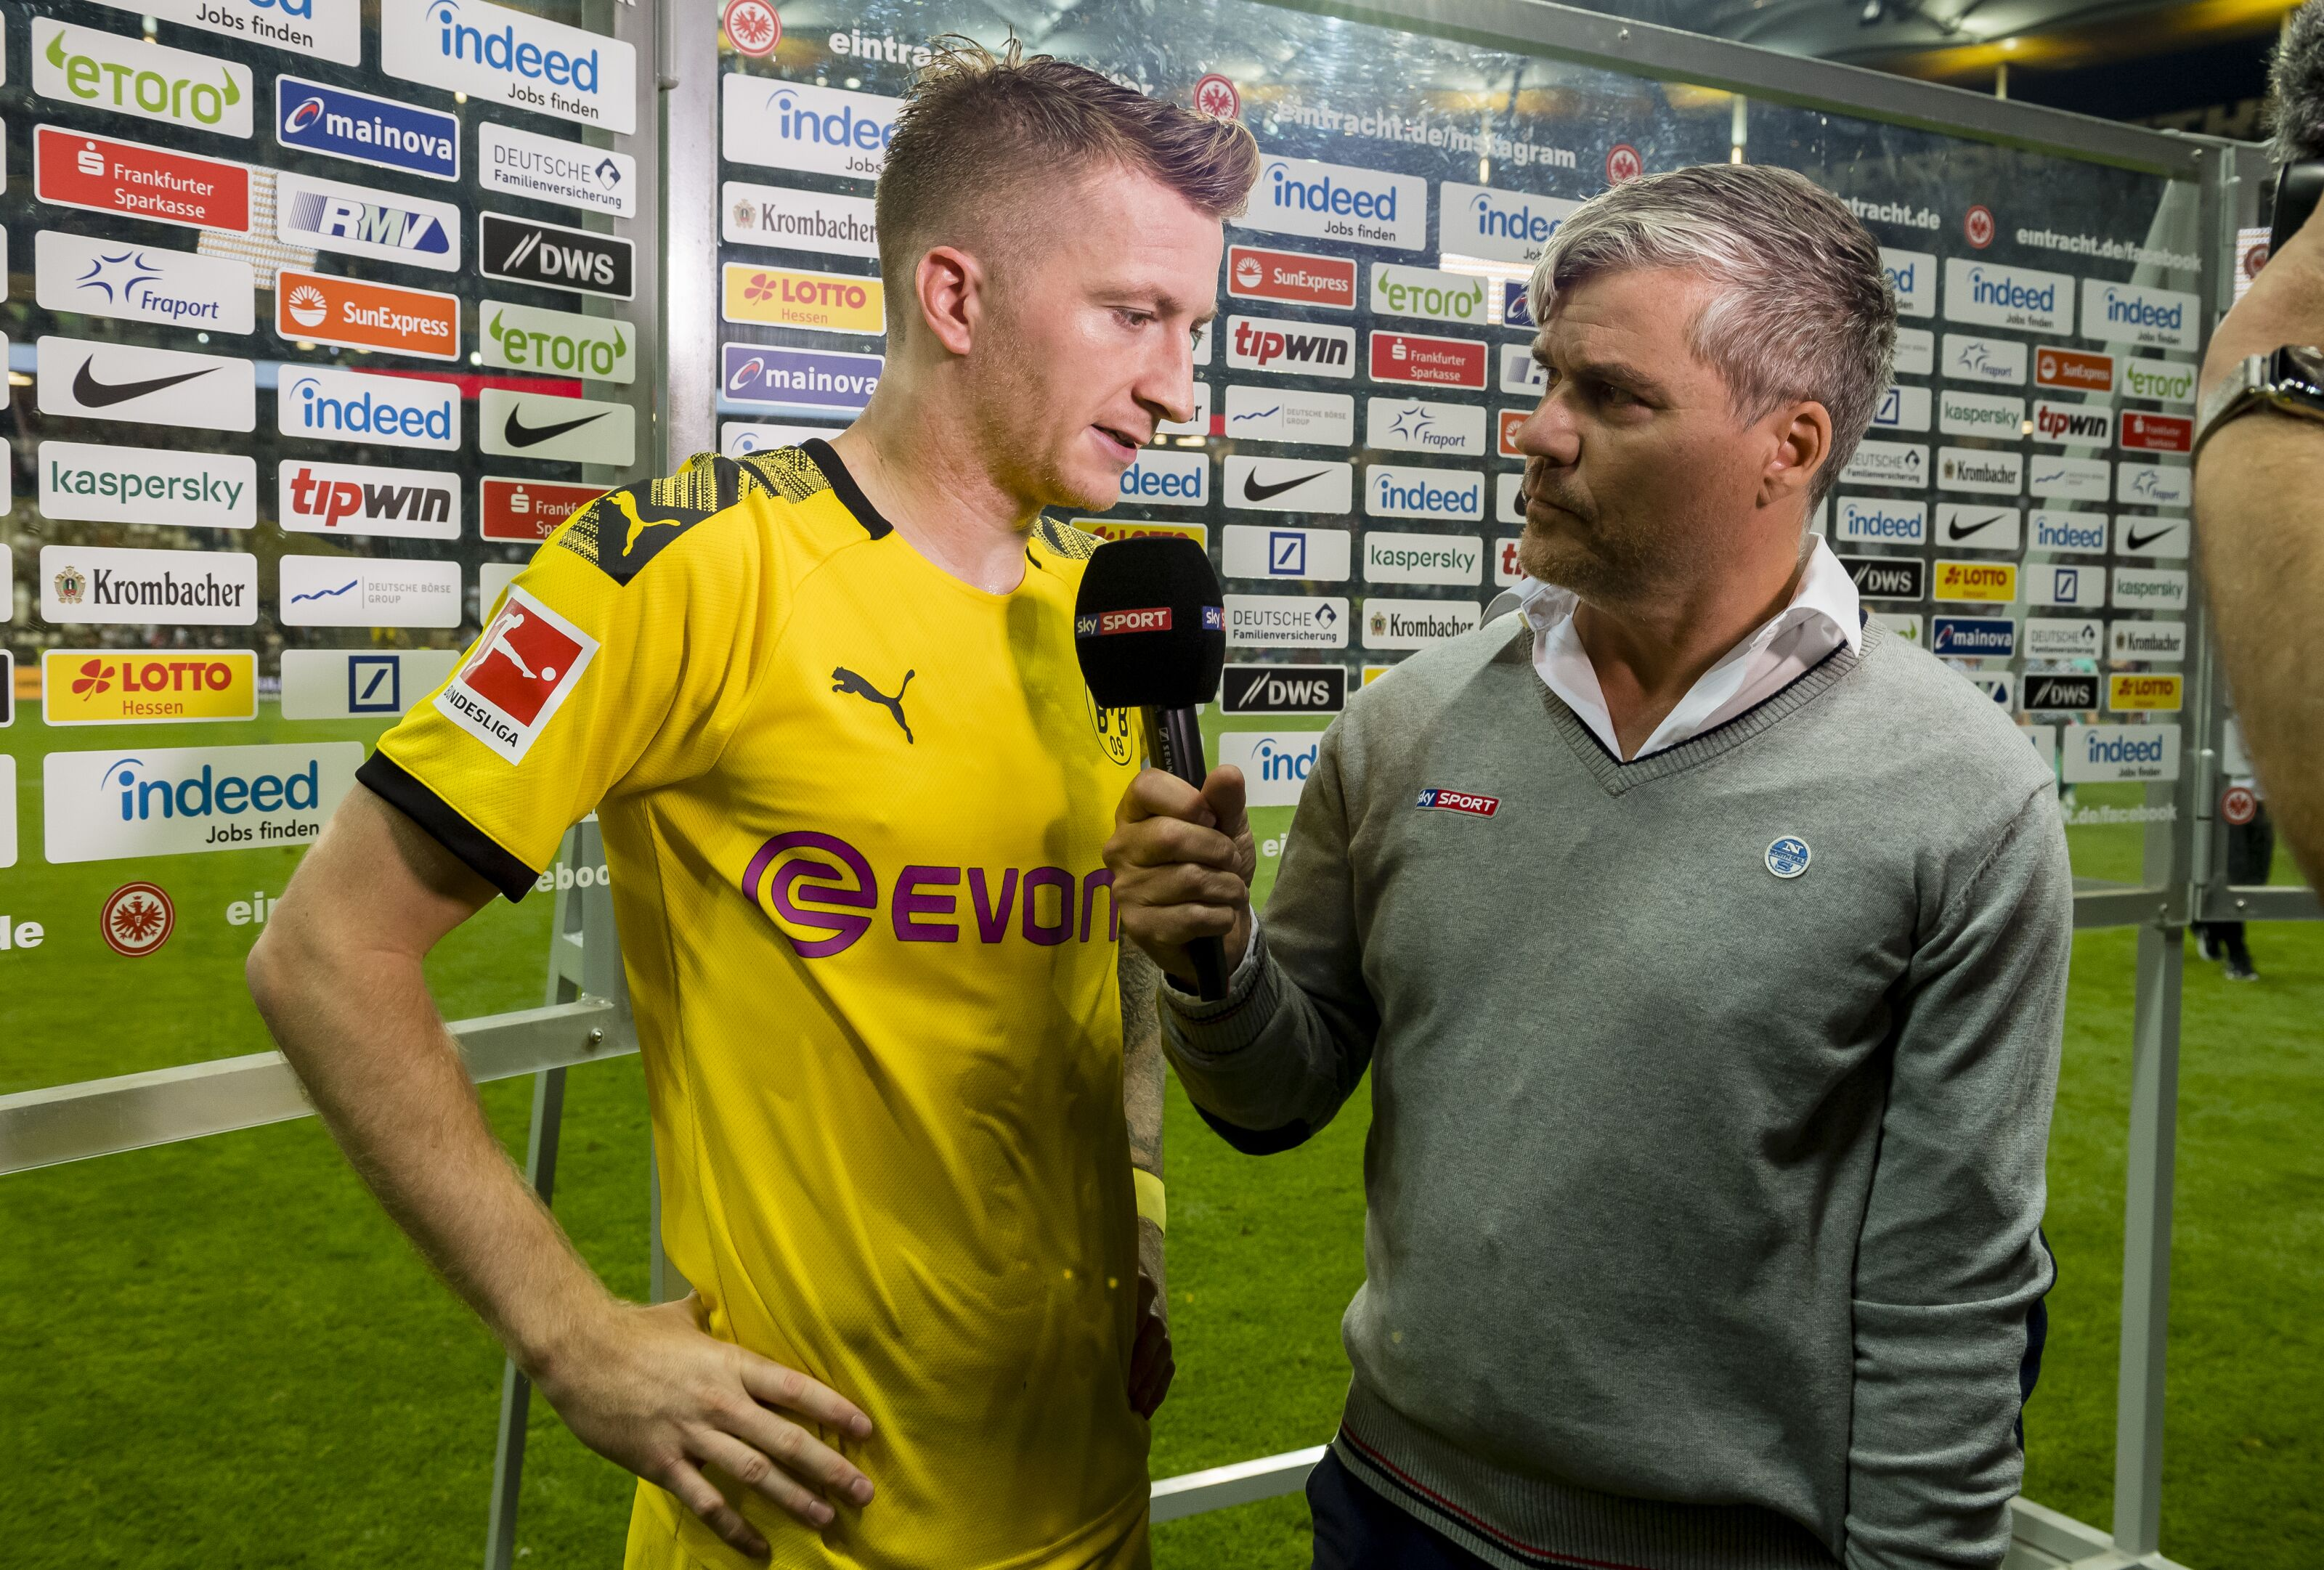 Marco Reus hits out at reporter questioning Borussia Dortmund's mentality after Eintracht Frankfurt draw